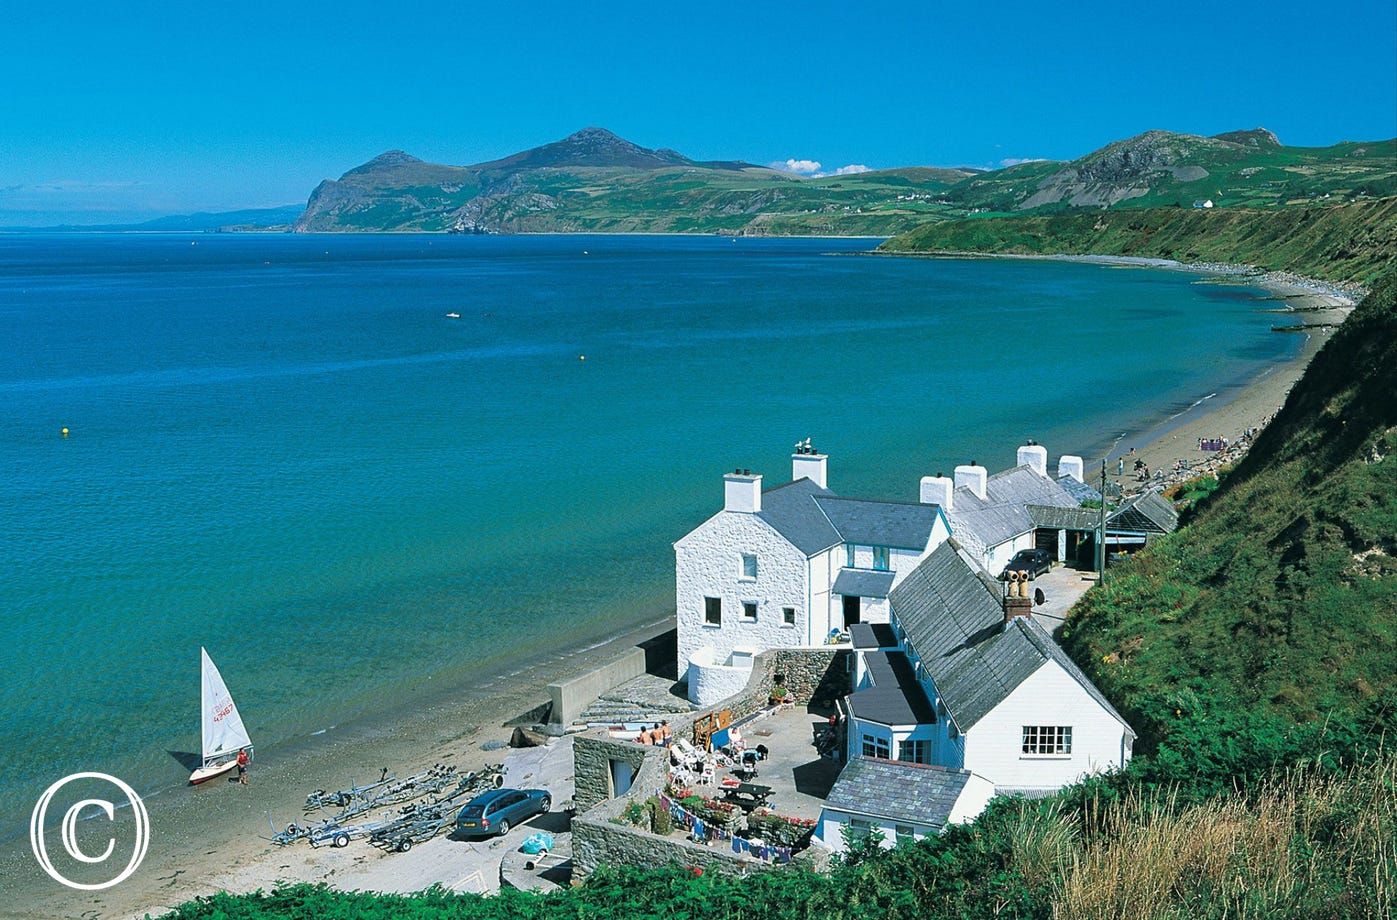 Ty Coch Inn at Porthdinllaen - voted 3rd best beach pub in the world